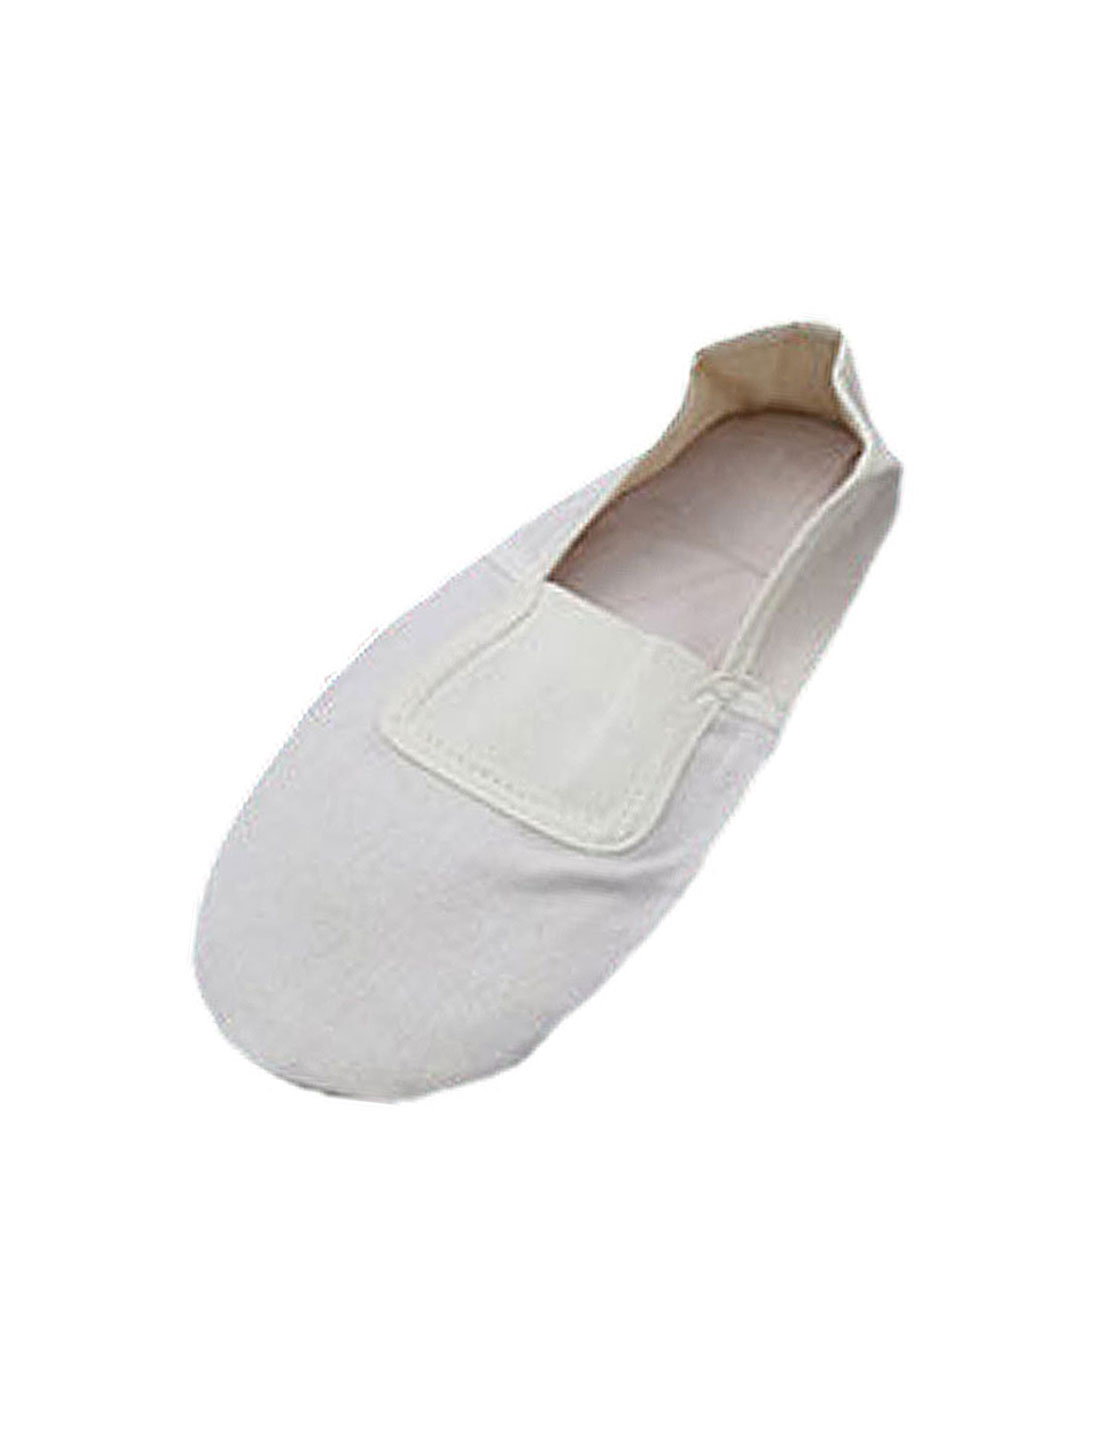 White Girls' Dancing Dance Soft Ballet Shoes Size 12